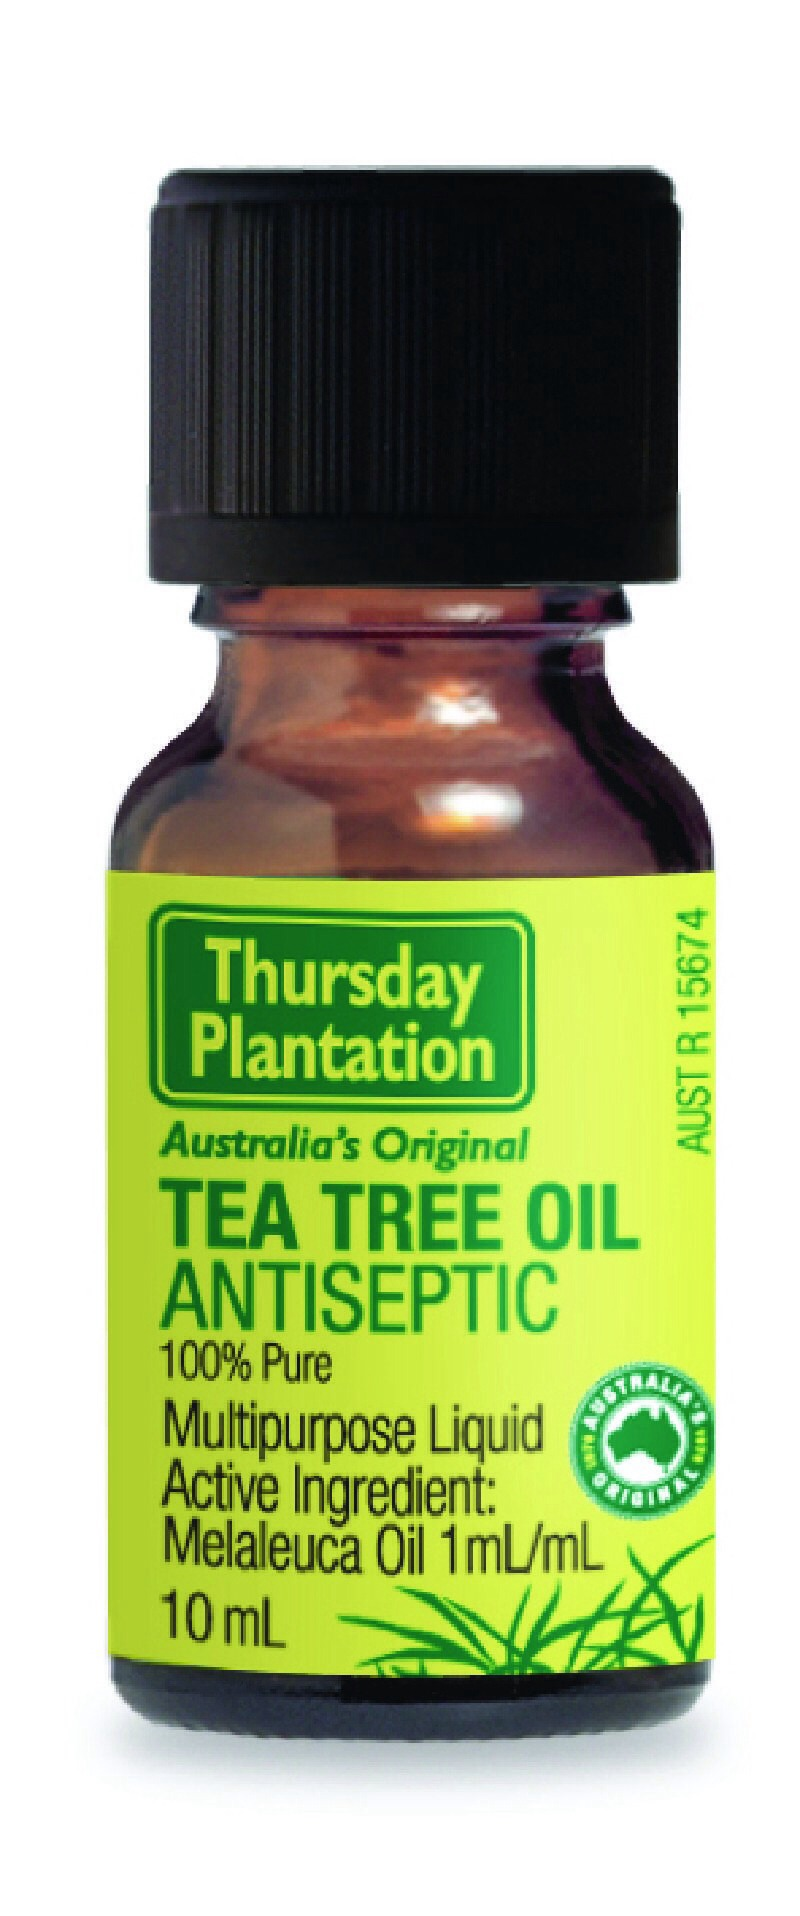 Tea tree oil. A natural anti fungal and antibacterial herbal remedy. Benzoyl peroxide and tea tree oil are proven to be equally effective in treating pimples.